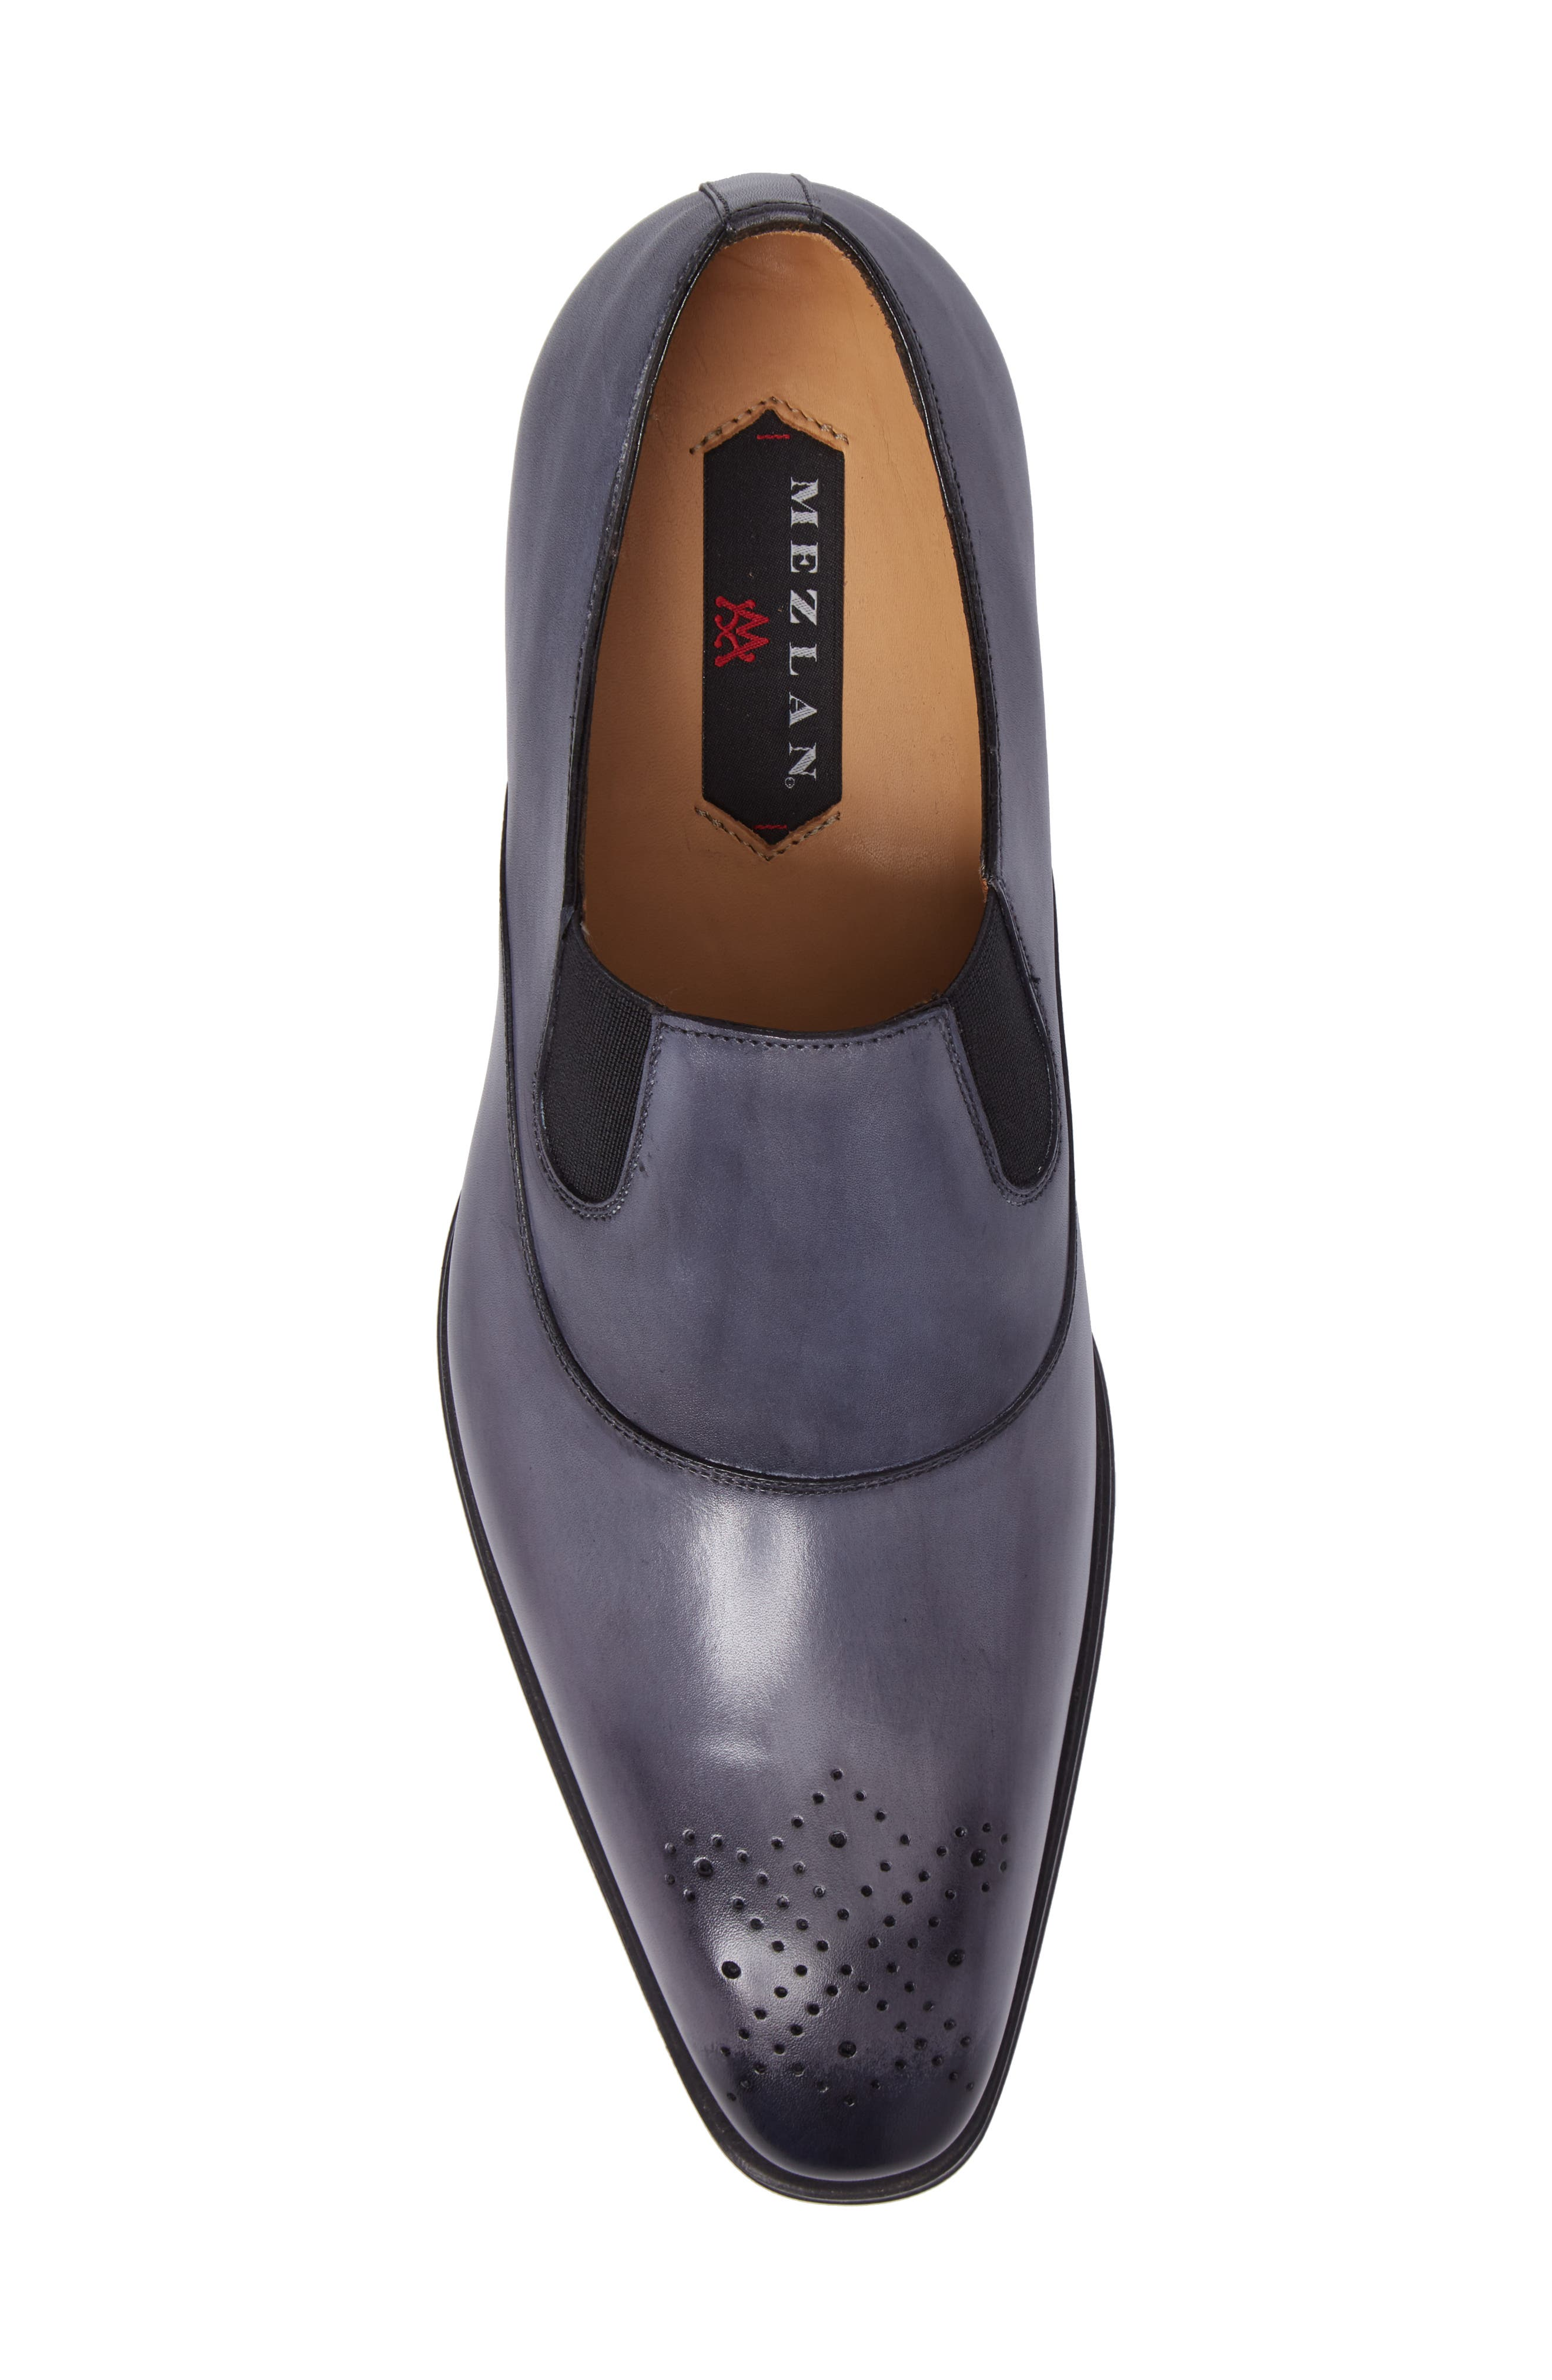 Posadas Venetian Loafer,                             Alternate thumbnail 5, color,                             Grey Leather